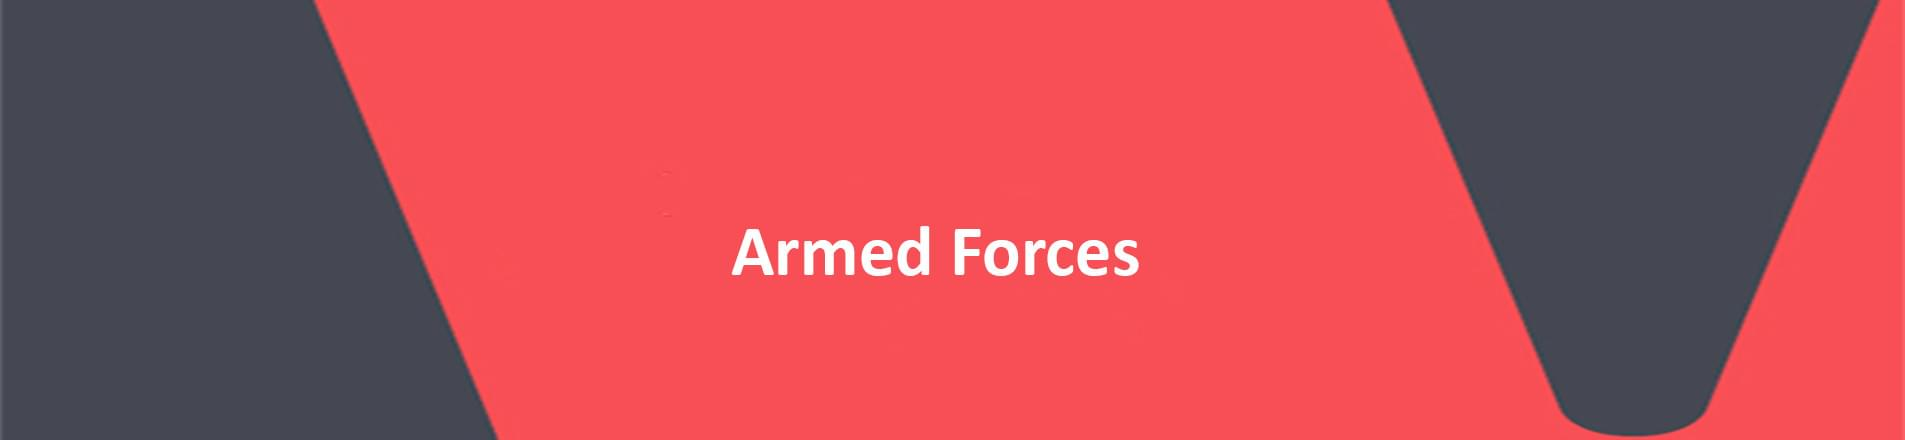 Image of the words armed forces on a red background